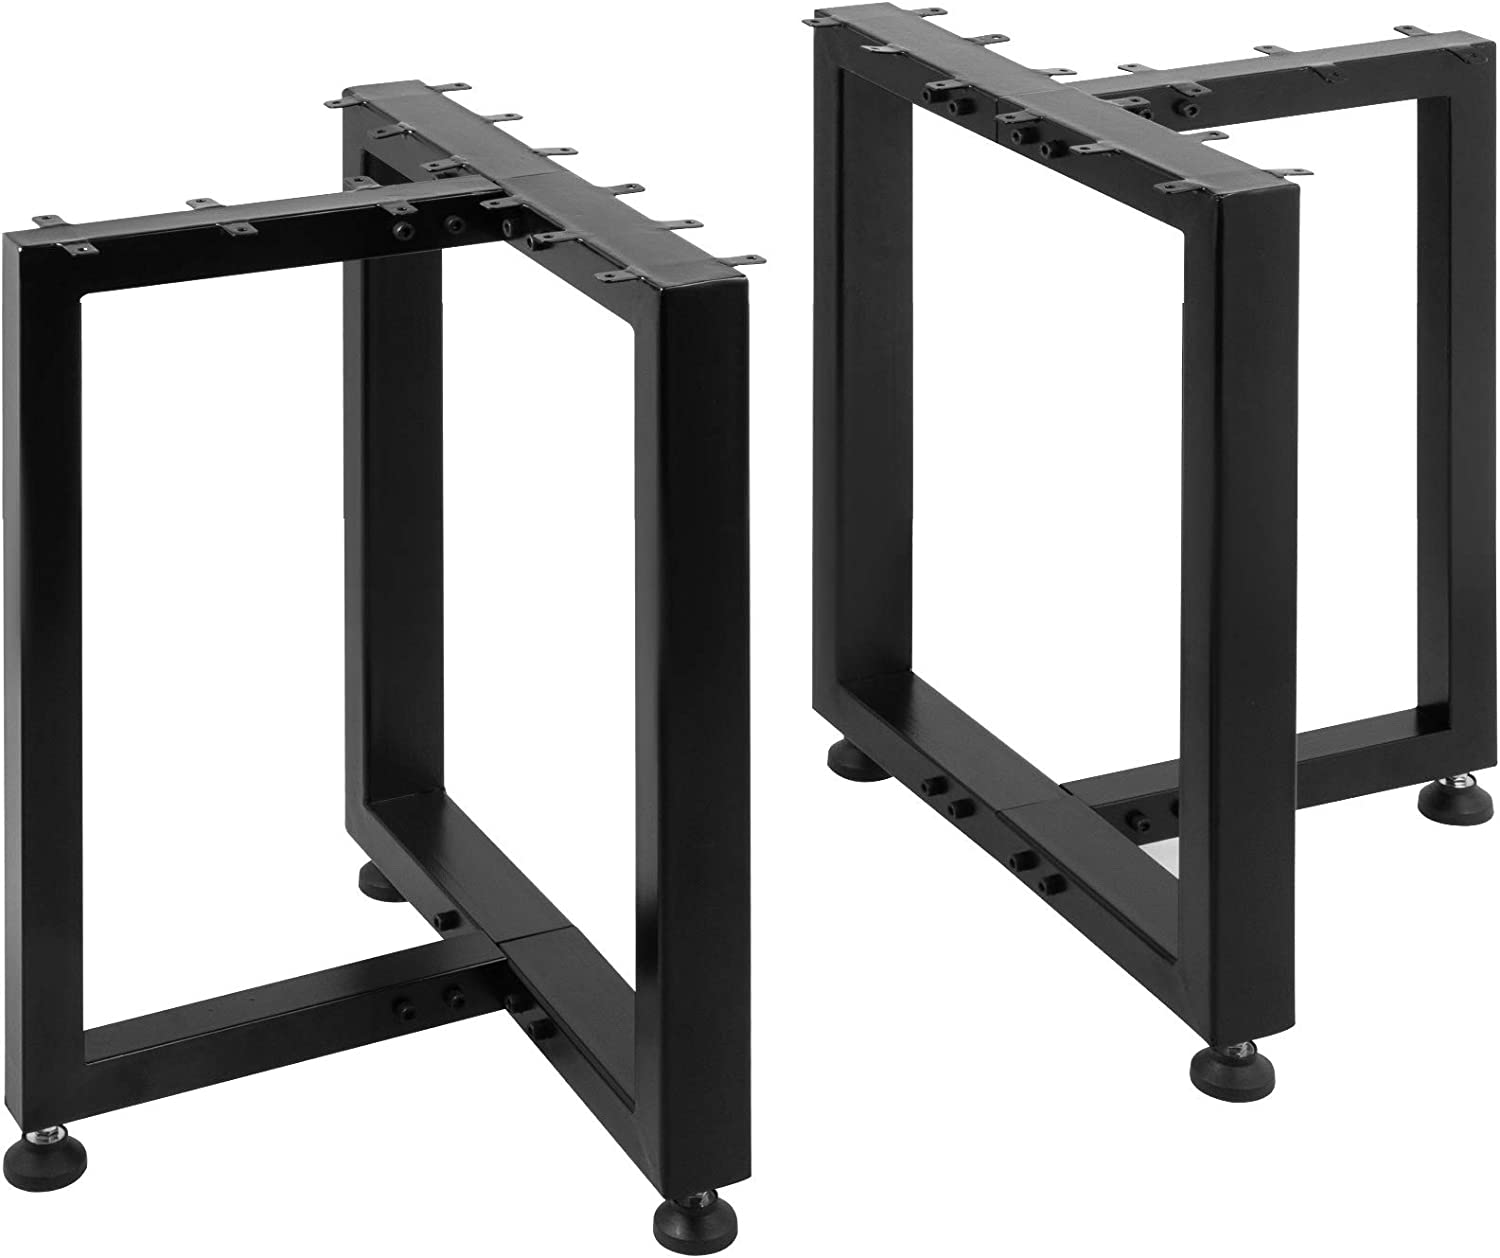 Happybuy Metal Table Legs Set Ranking National uniform free shipping TOP20 of 2 Height Dining 28